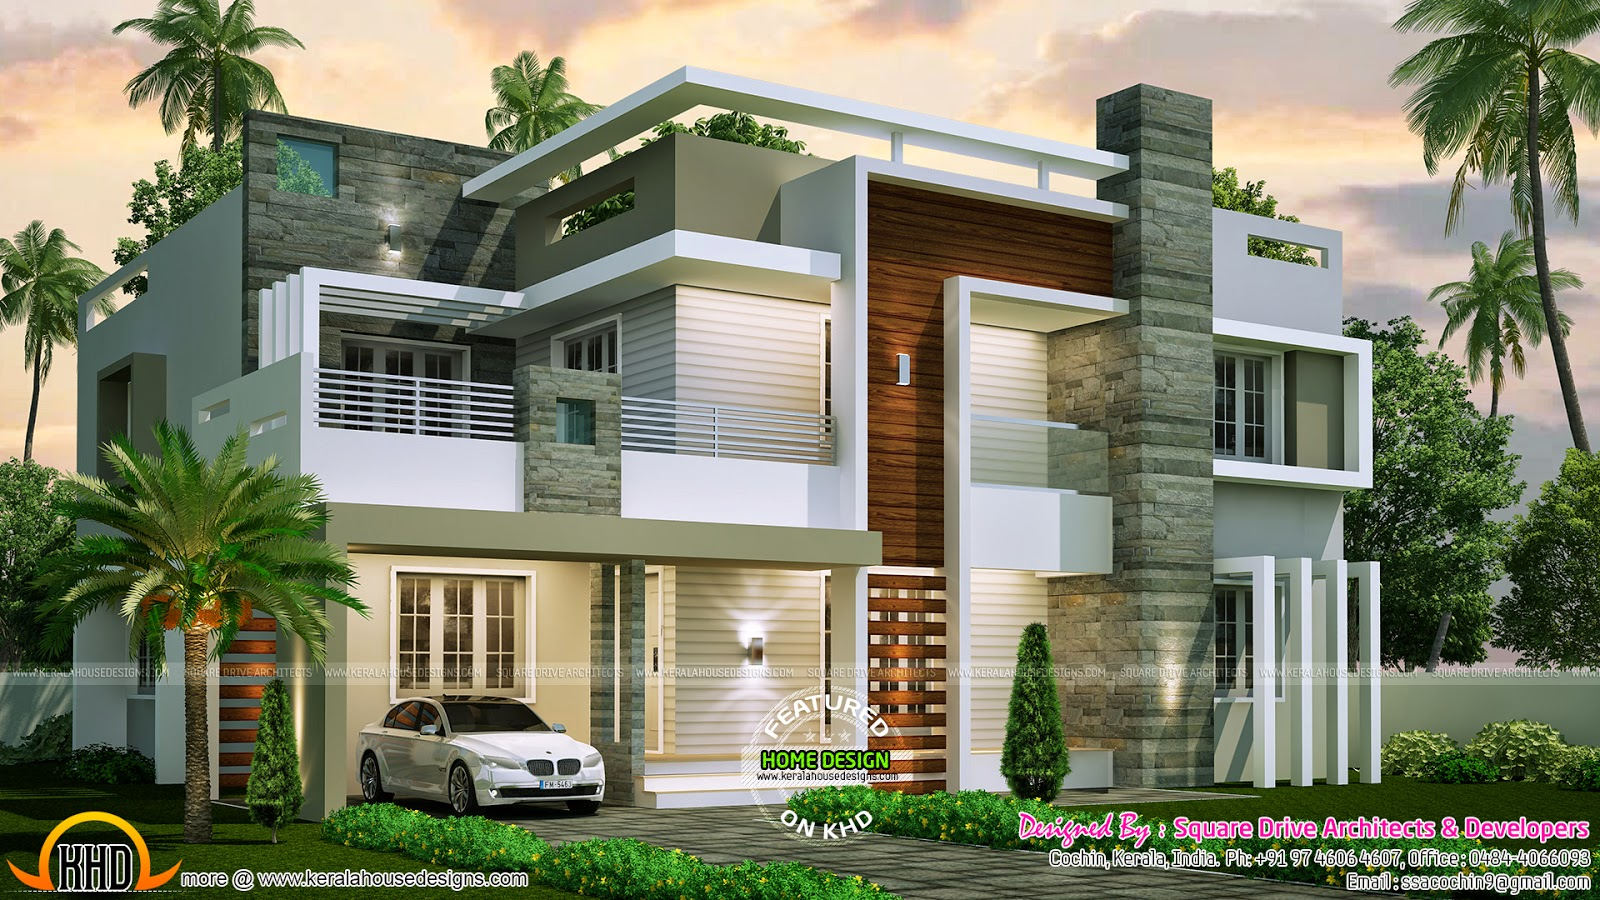 4 bedroom contemporary home design kerala home design for Contemporary house designs